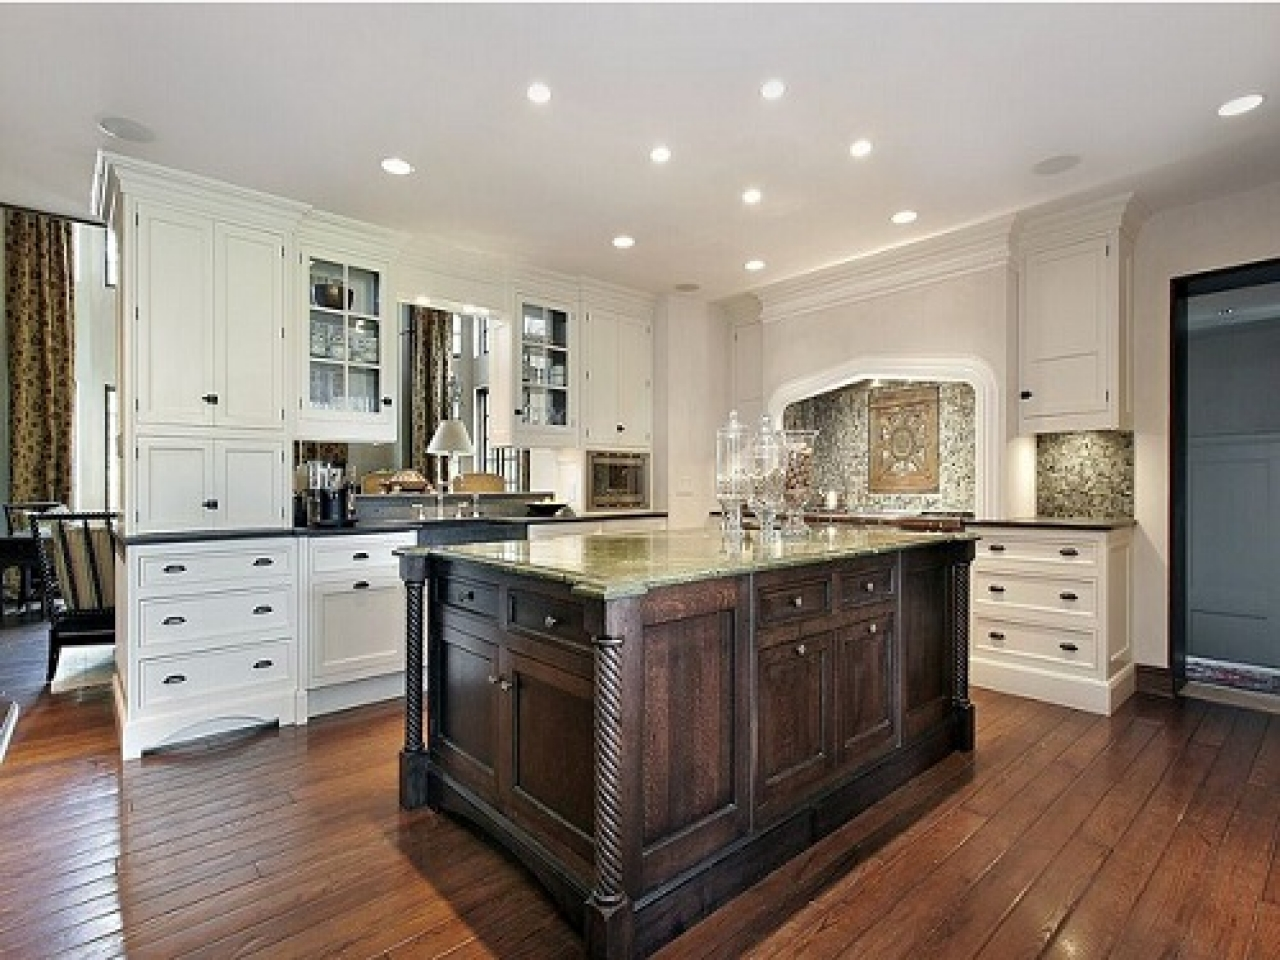 kitchen remodeling ideas white cabinets - kitchen remodel ideas